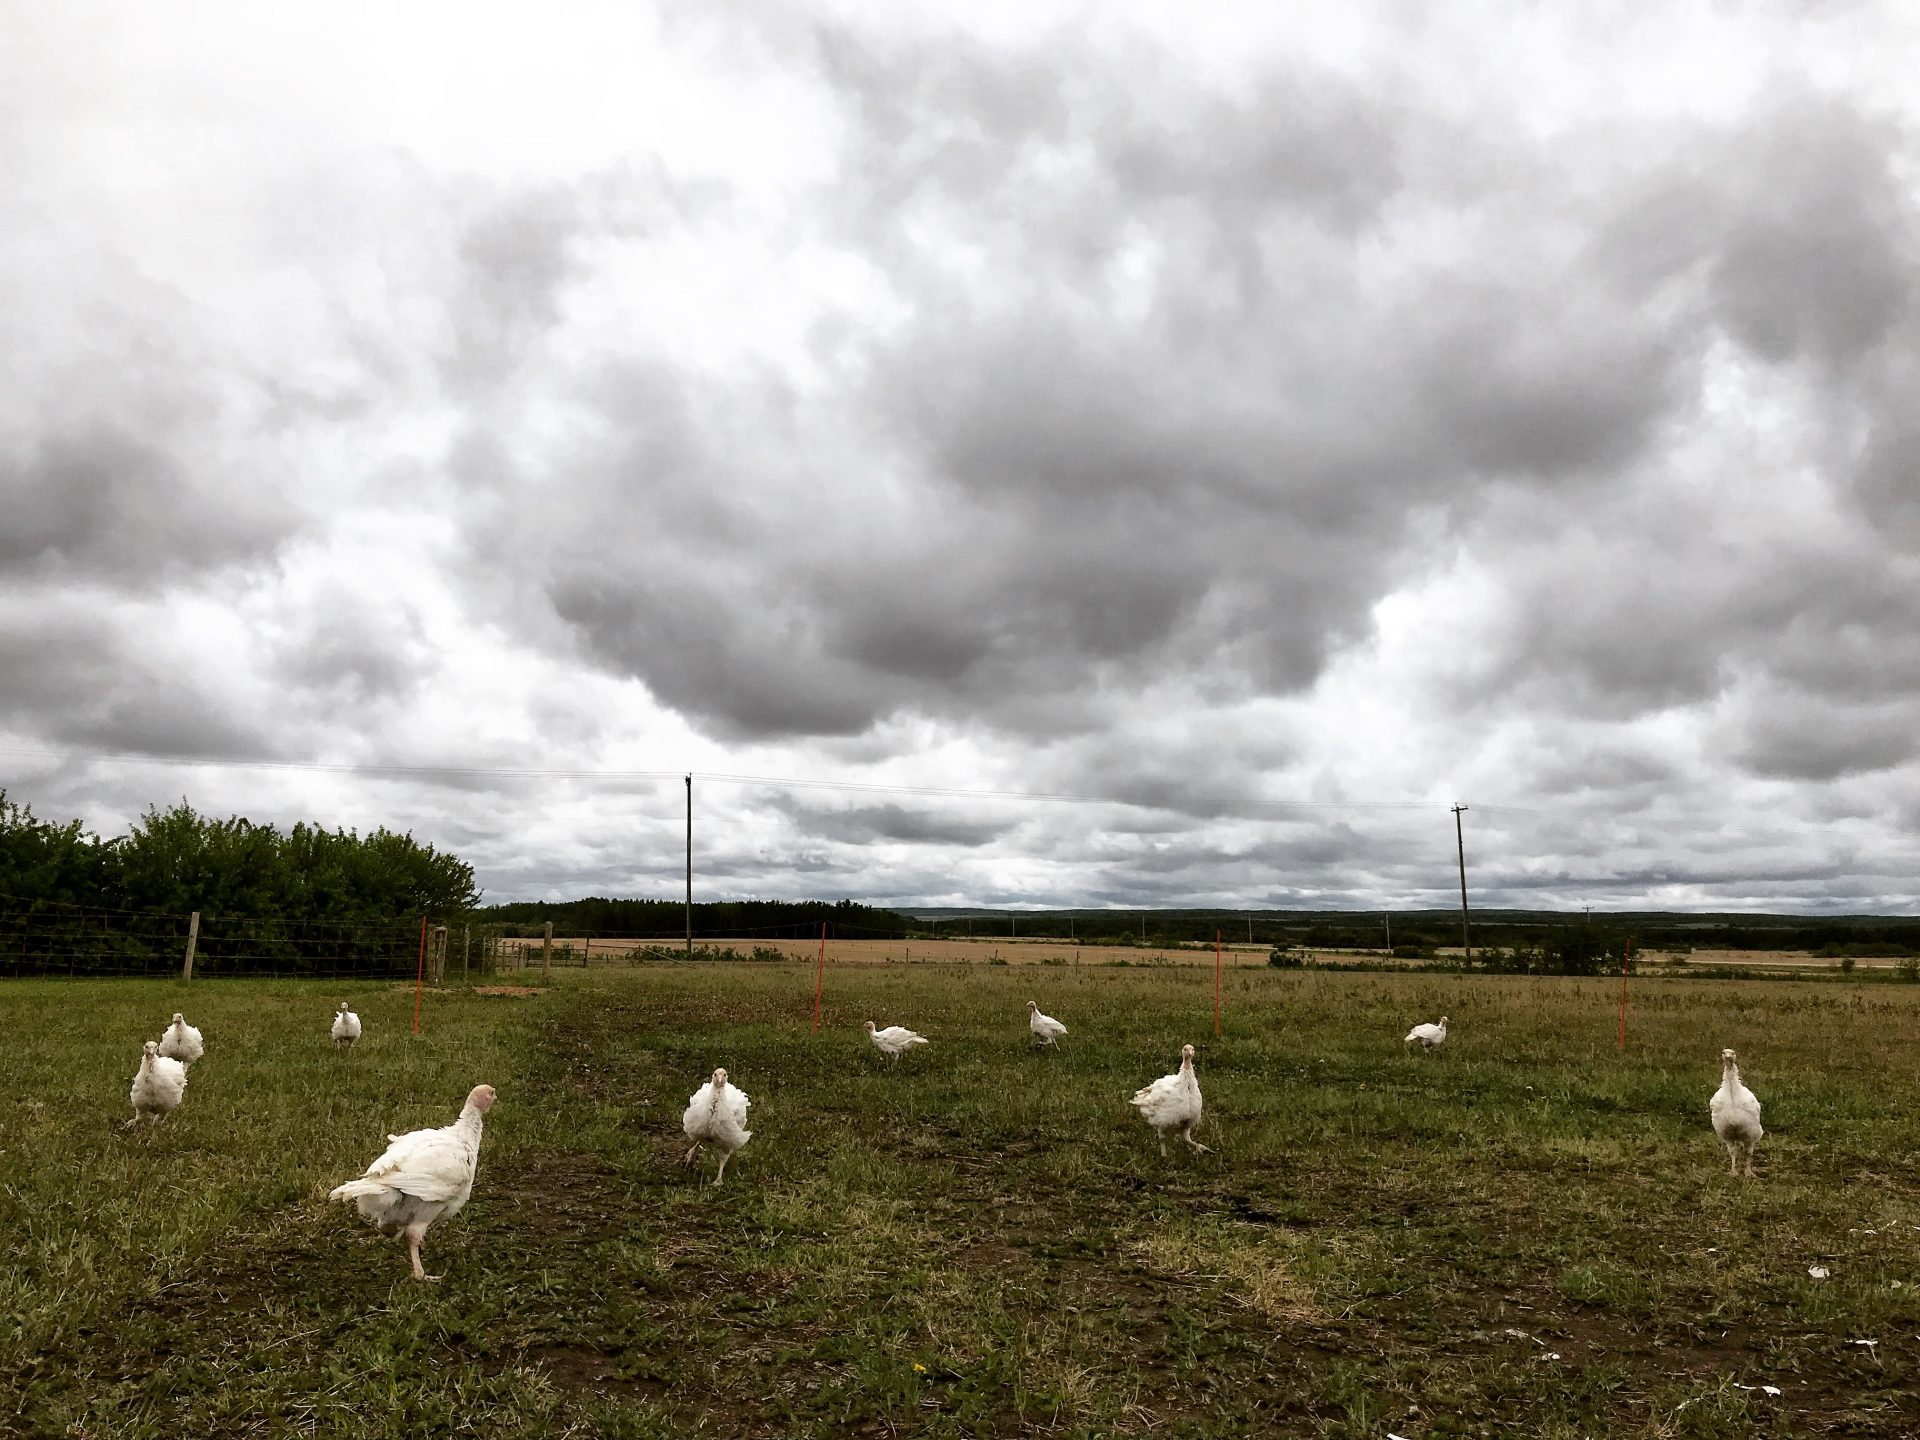 Whiskey Creek Ranch - Turkey poults under stormy skies